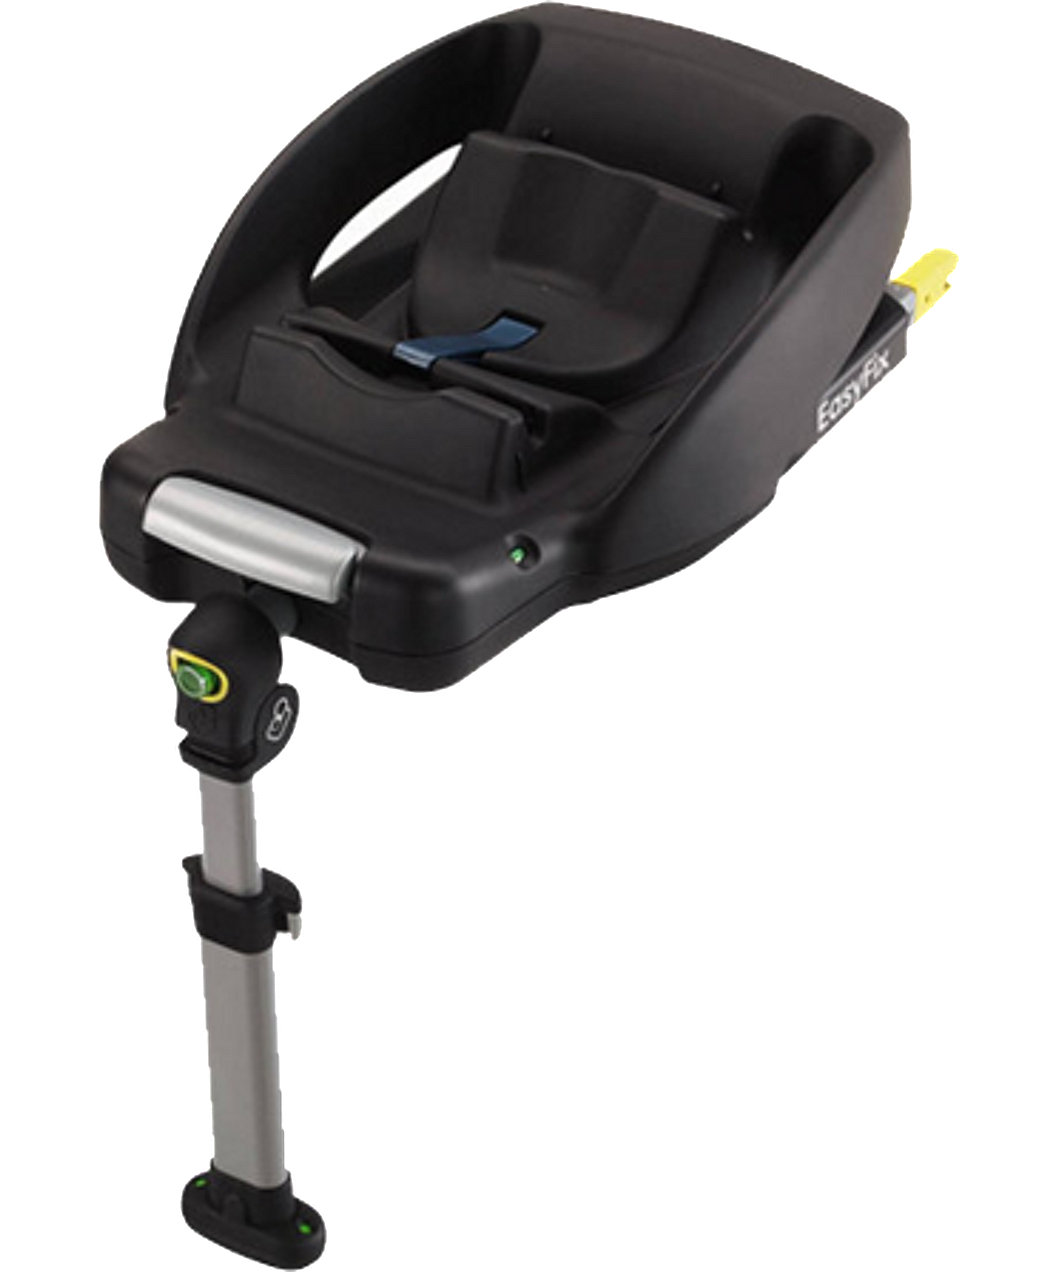 maxi cosi easyfix semi universal isofix base. Black Bedroom Furniture Sets. Home Design Ideas